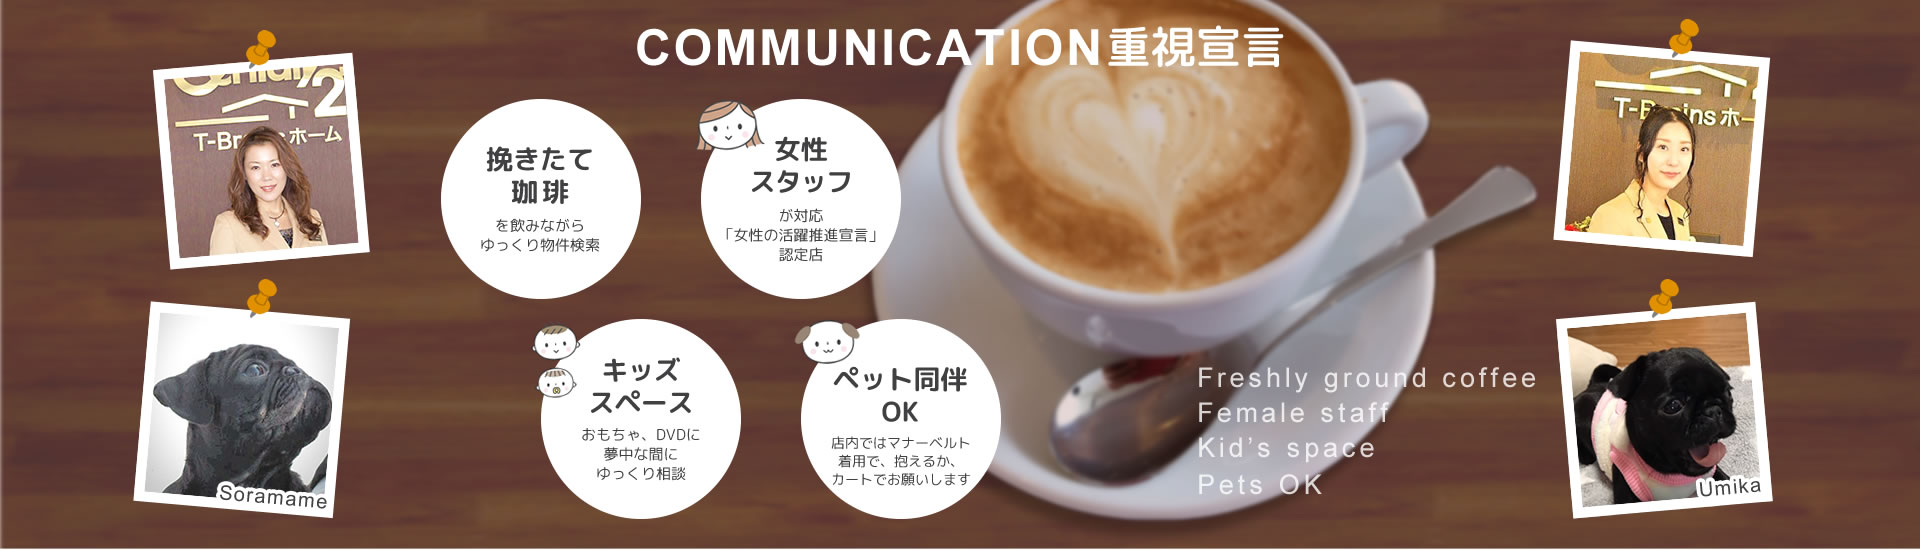 COMMUNICATION重視宣言